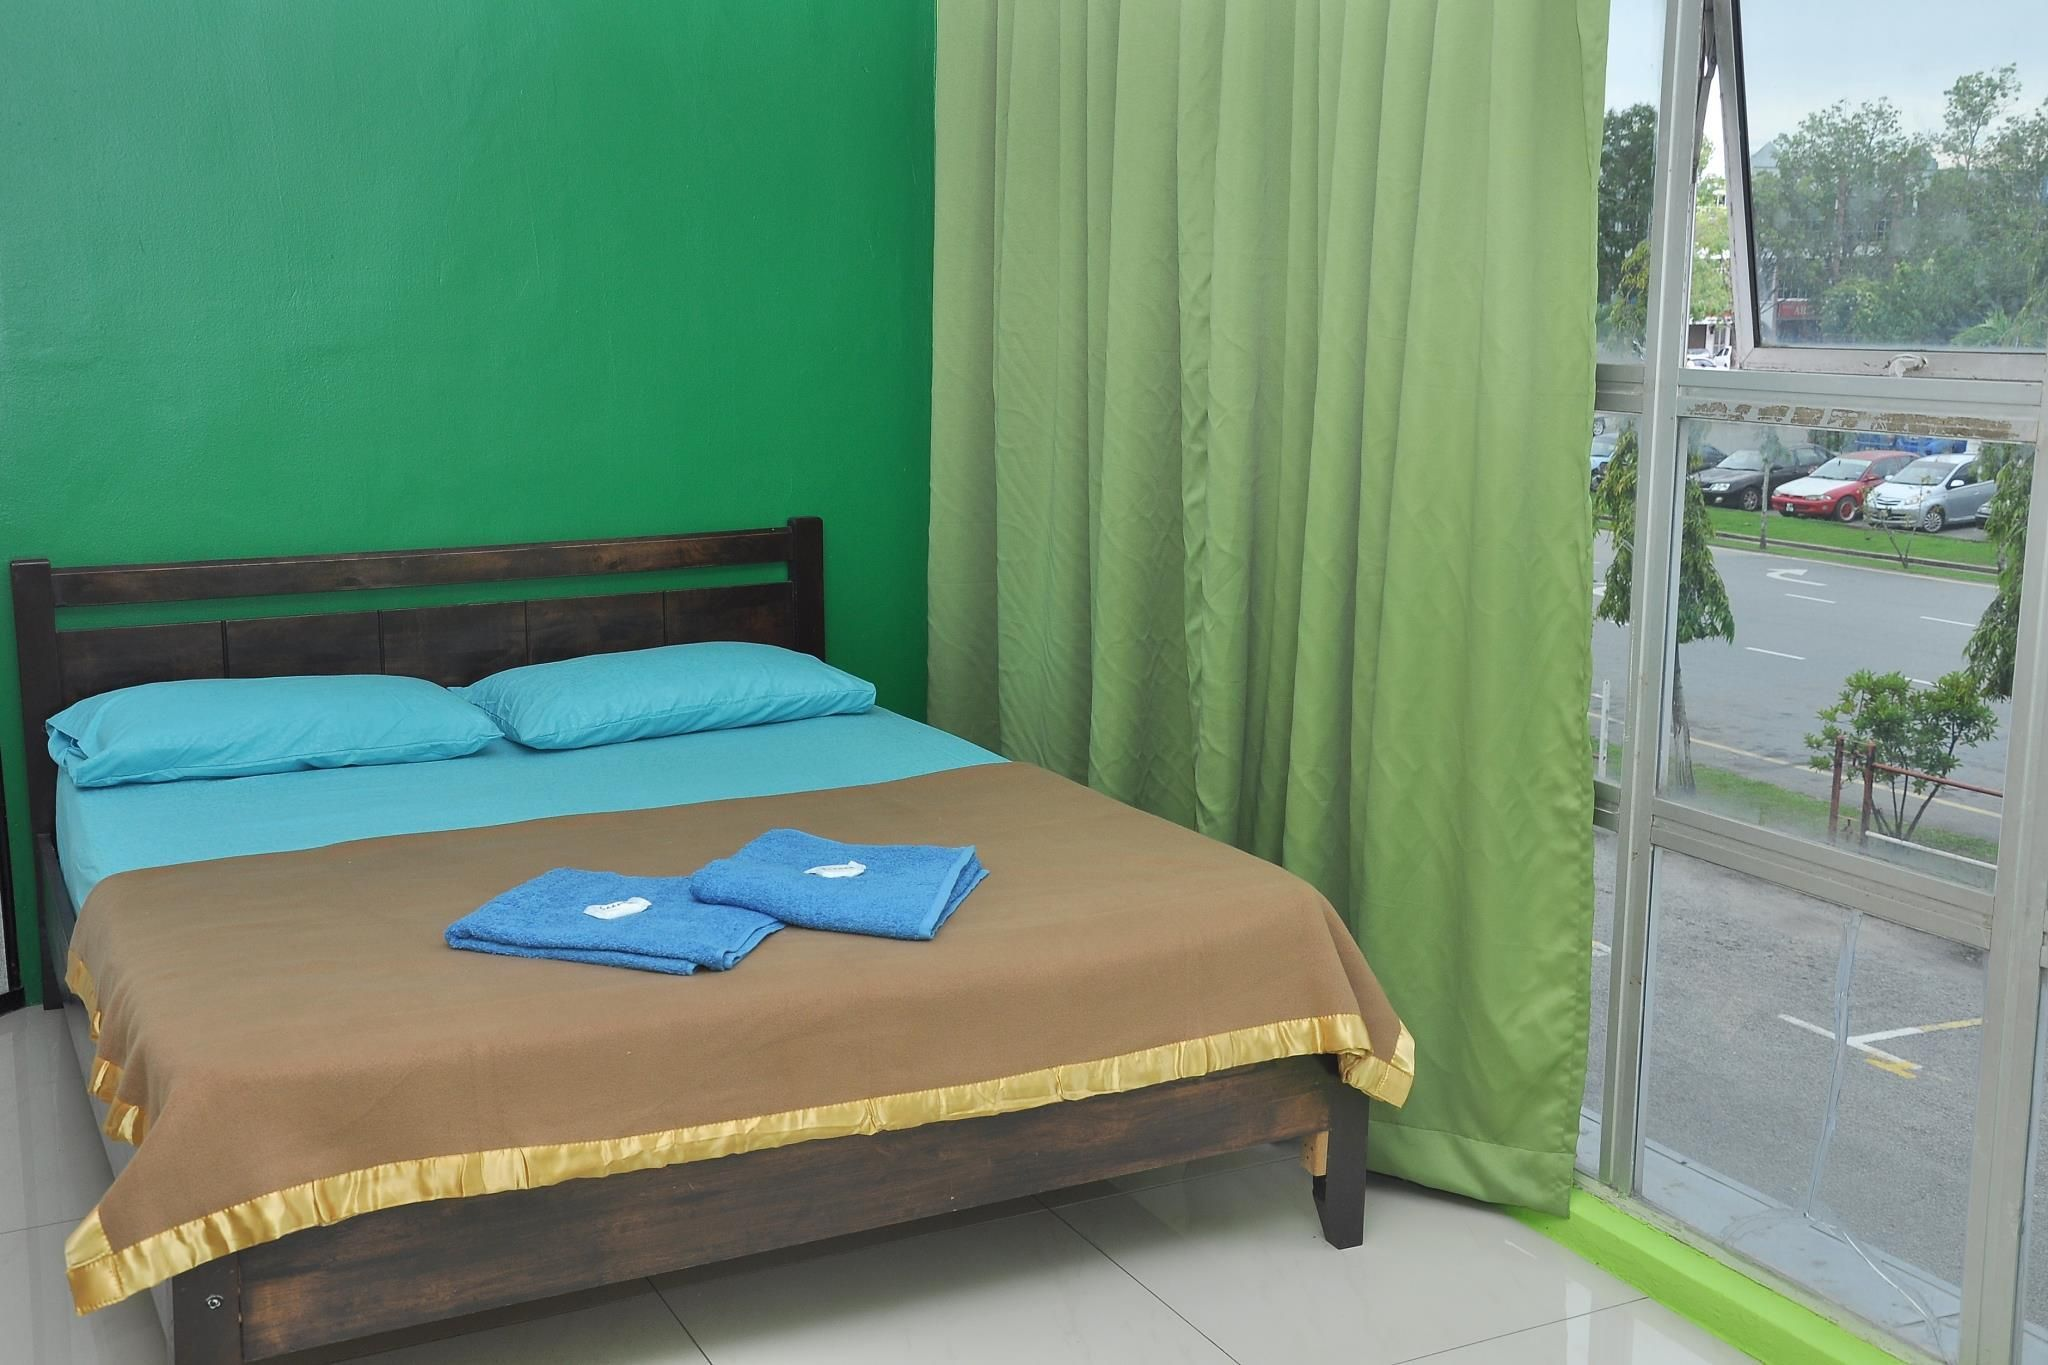 Tanjak Motel Alor Setar Home, Hotel, Home decor